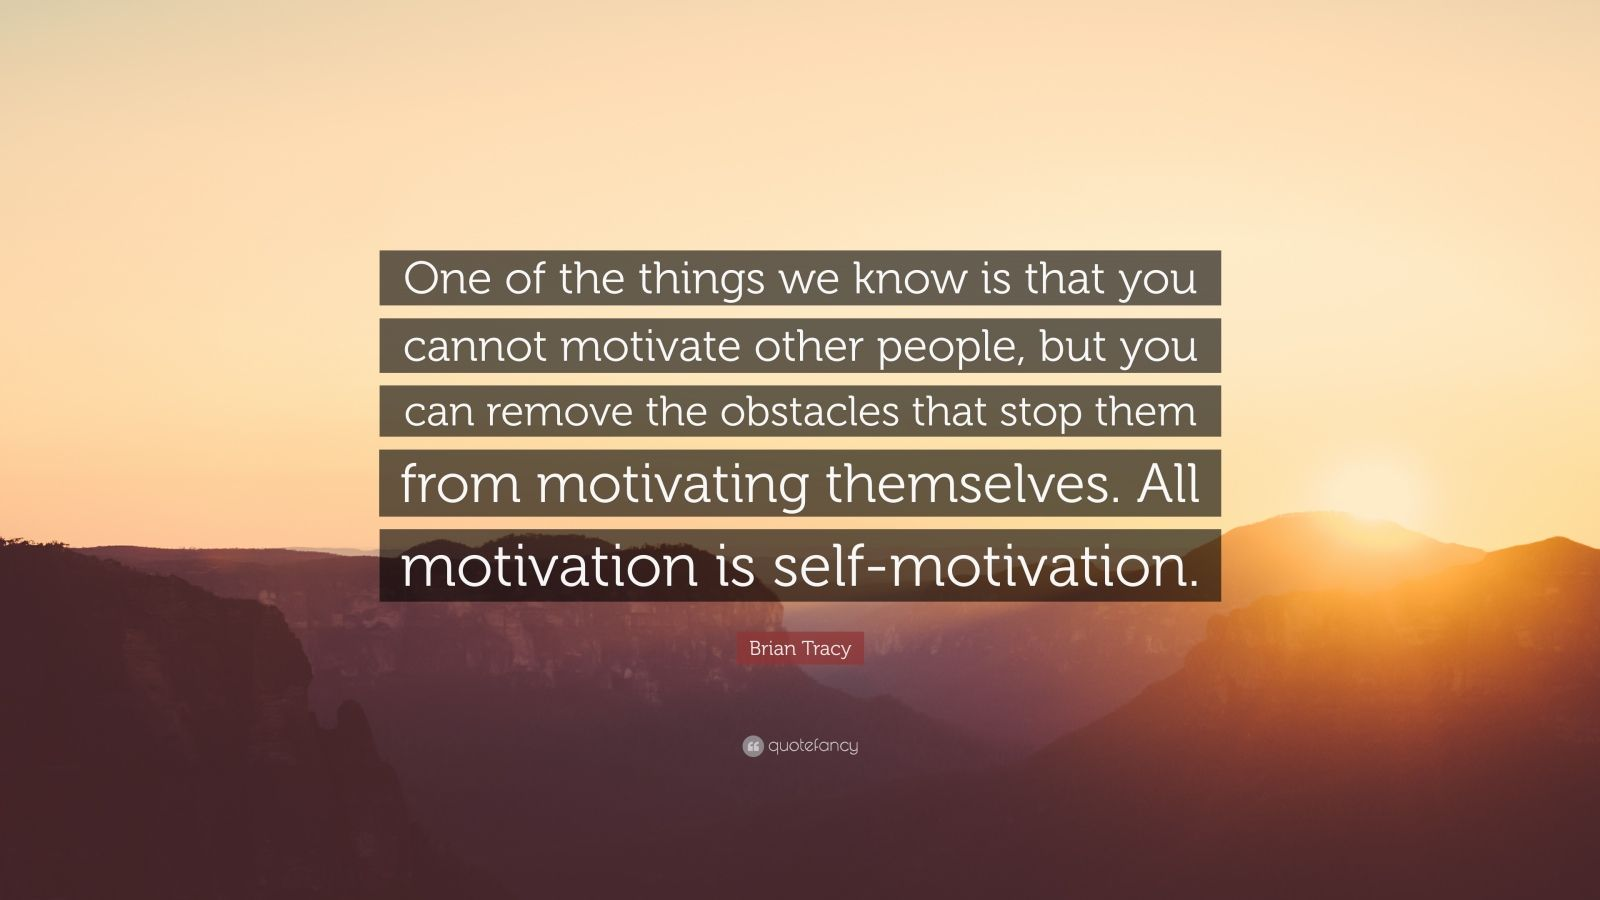 """Brian Tracy Quote: """"One of the things we know is that you cannot motivate other people, but you can remove the obstacles that stop them from motivating themselves. All motivation is self-motivation."""""""